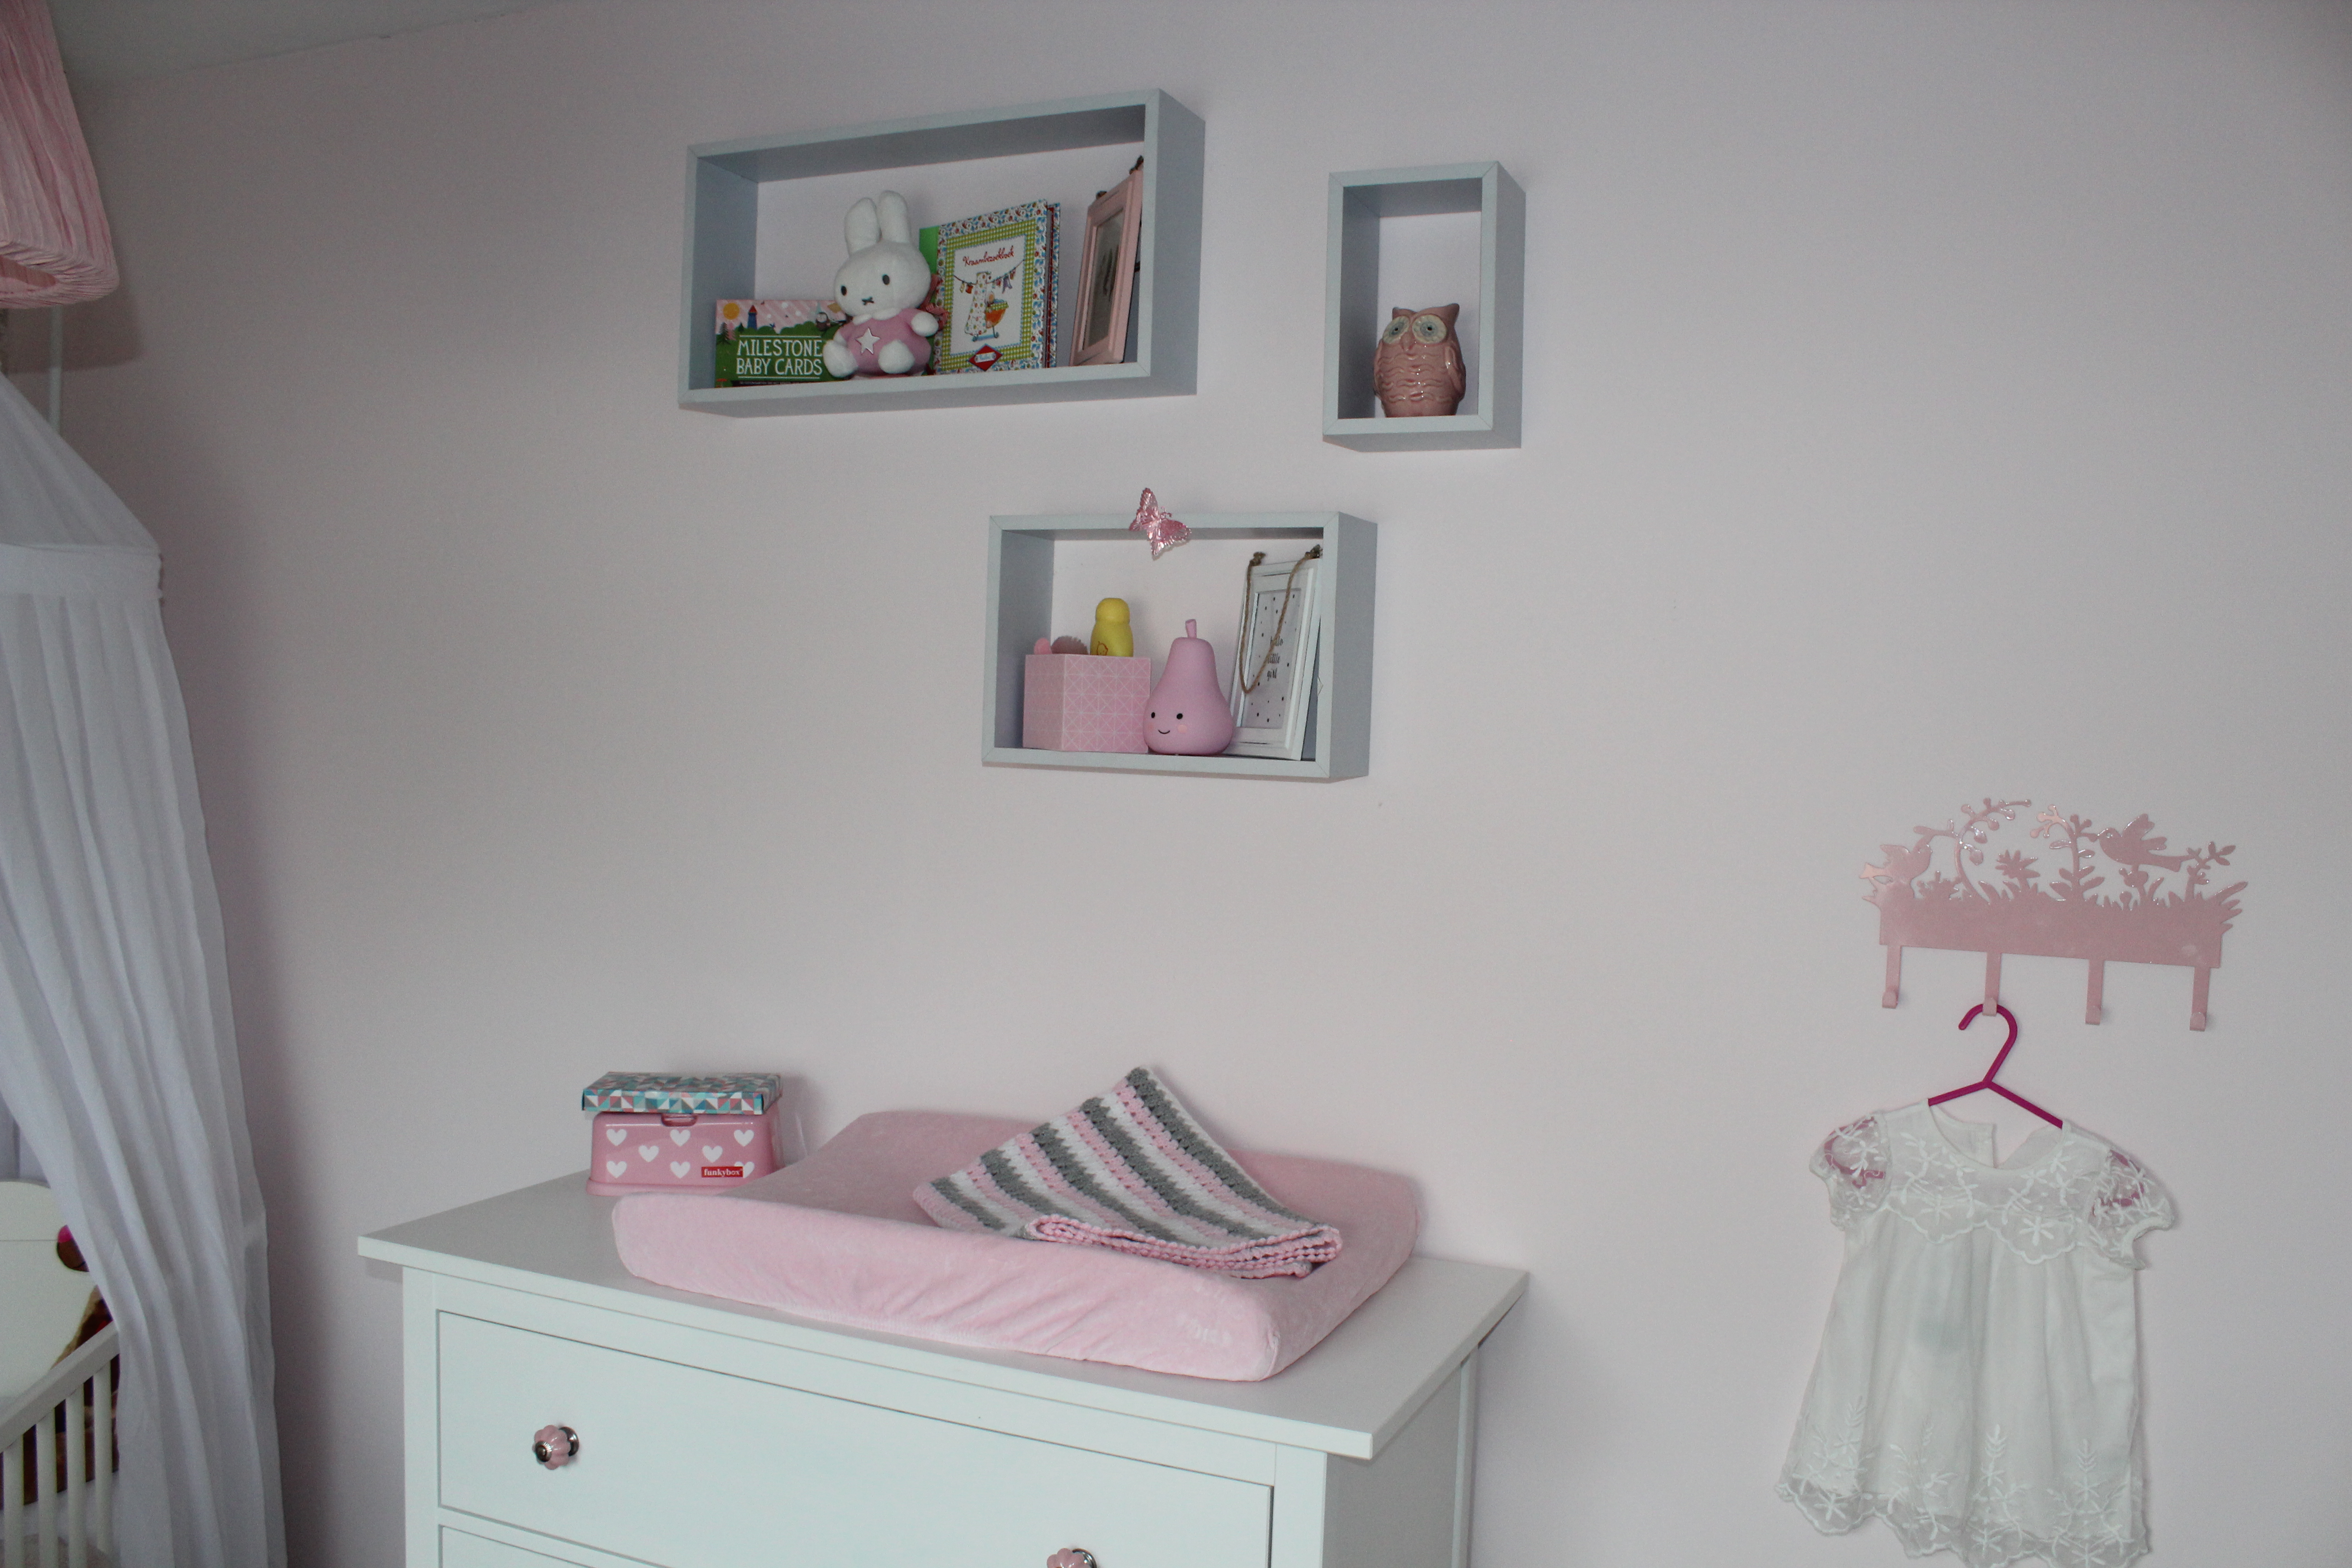 Babykamer roomtour for Muurdecoratie babykamer